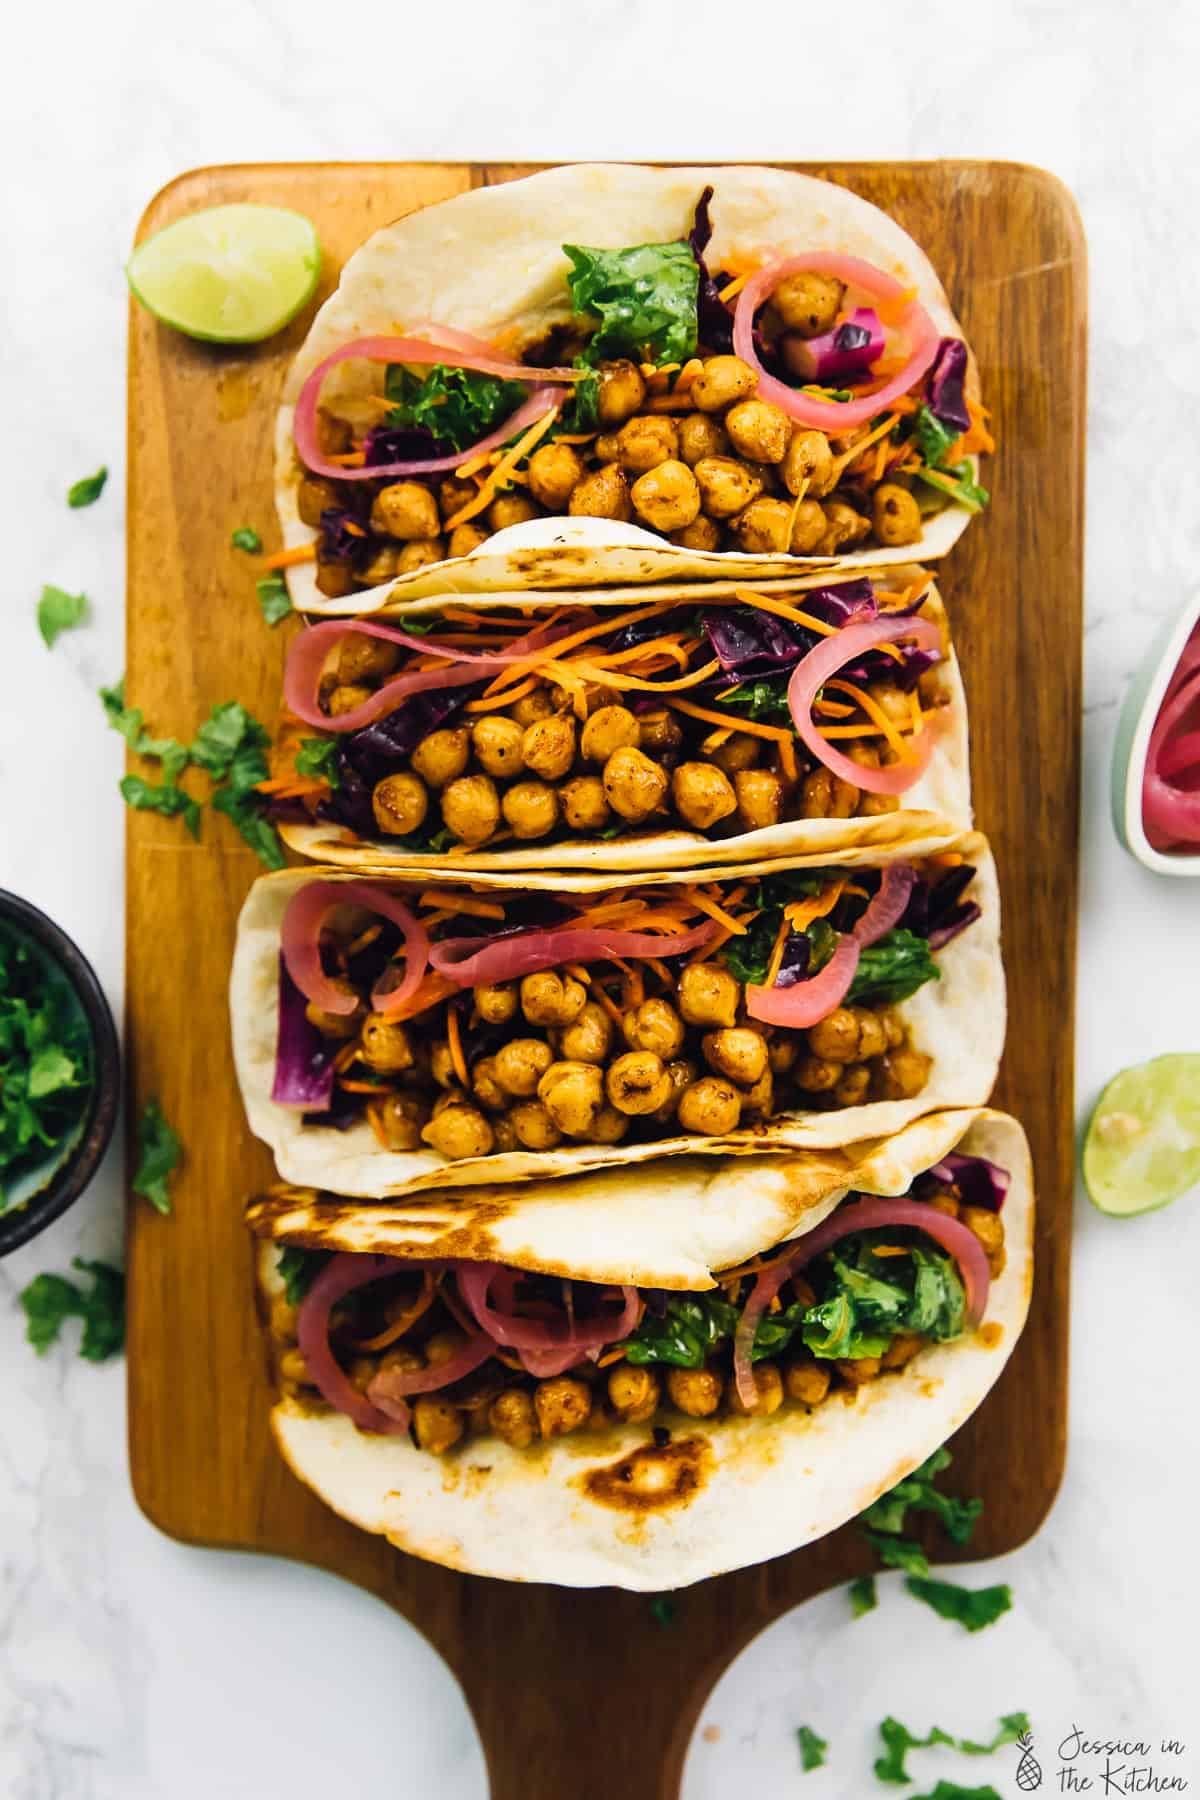 BBQ CHICKPEA TACOS WITH KALE CABBAGE SLAW VEGAN